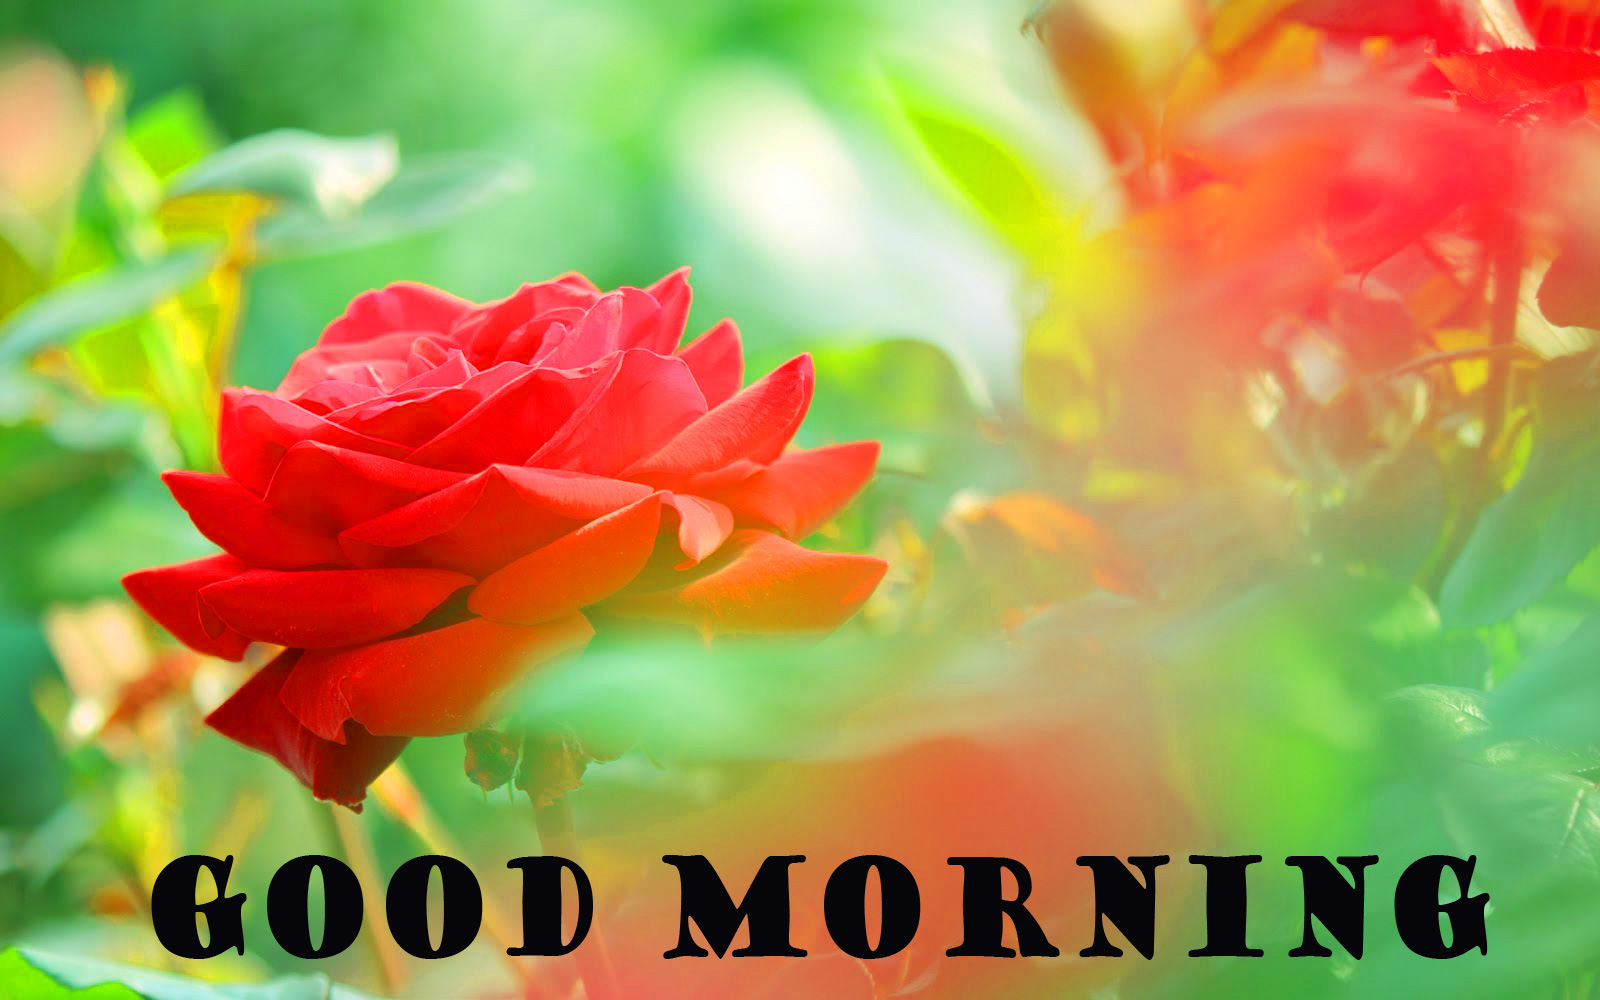 Good Morning Red Rose Wallpaper Pictures For Whatsapp